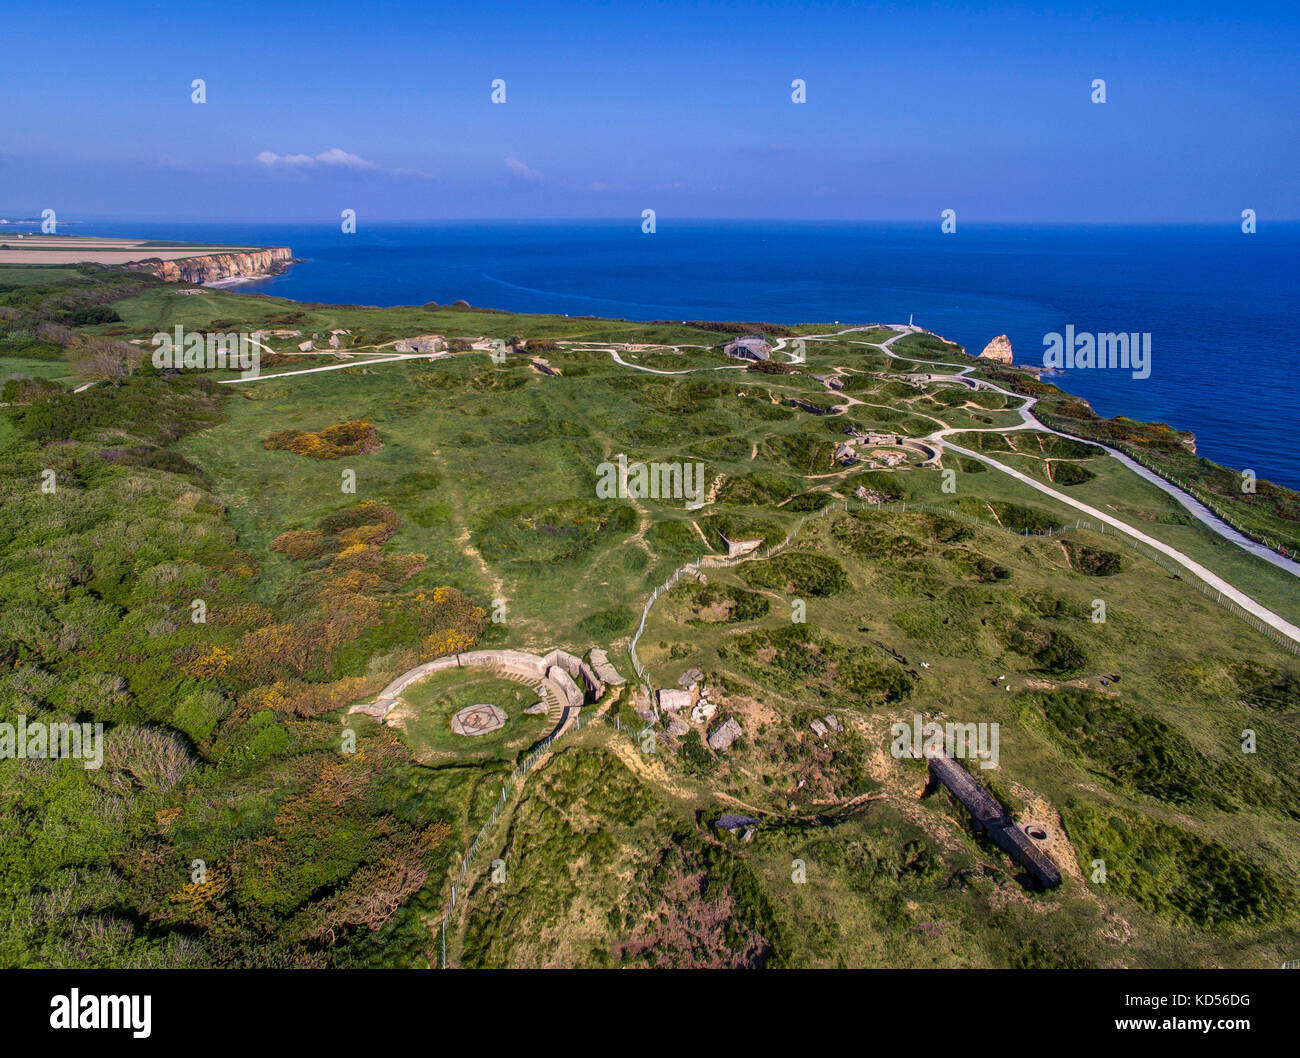 Cricqueville-en-Bessin (Normandy, north-western France): The Pointe du Hoc headland, site of the landing operations - Stock Image